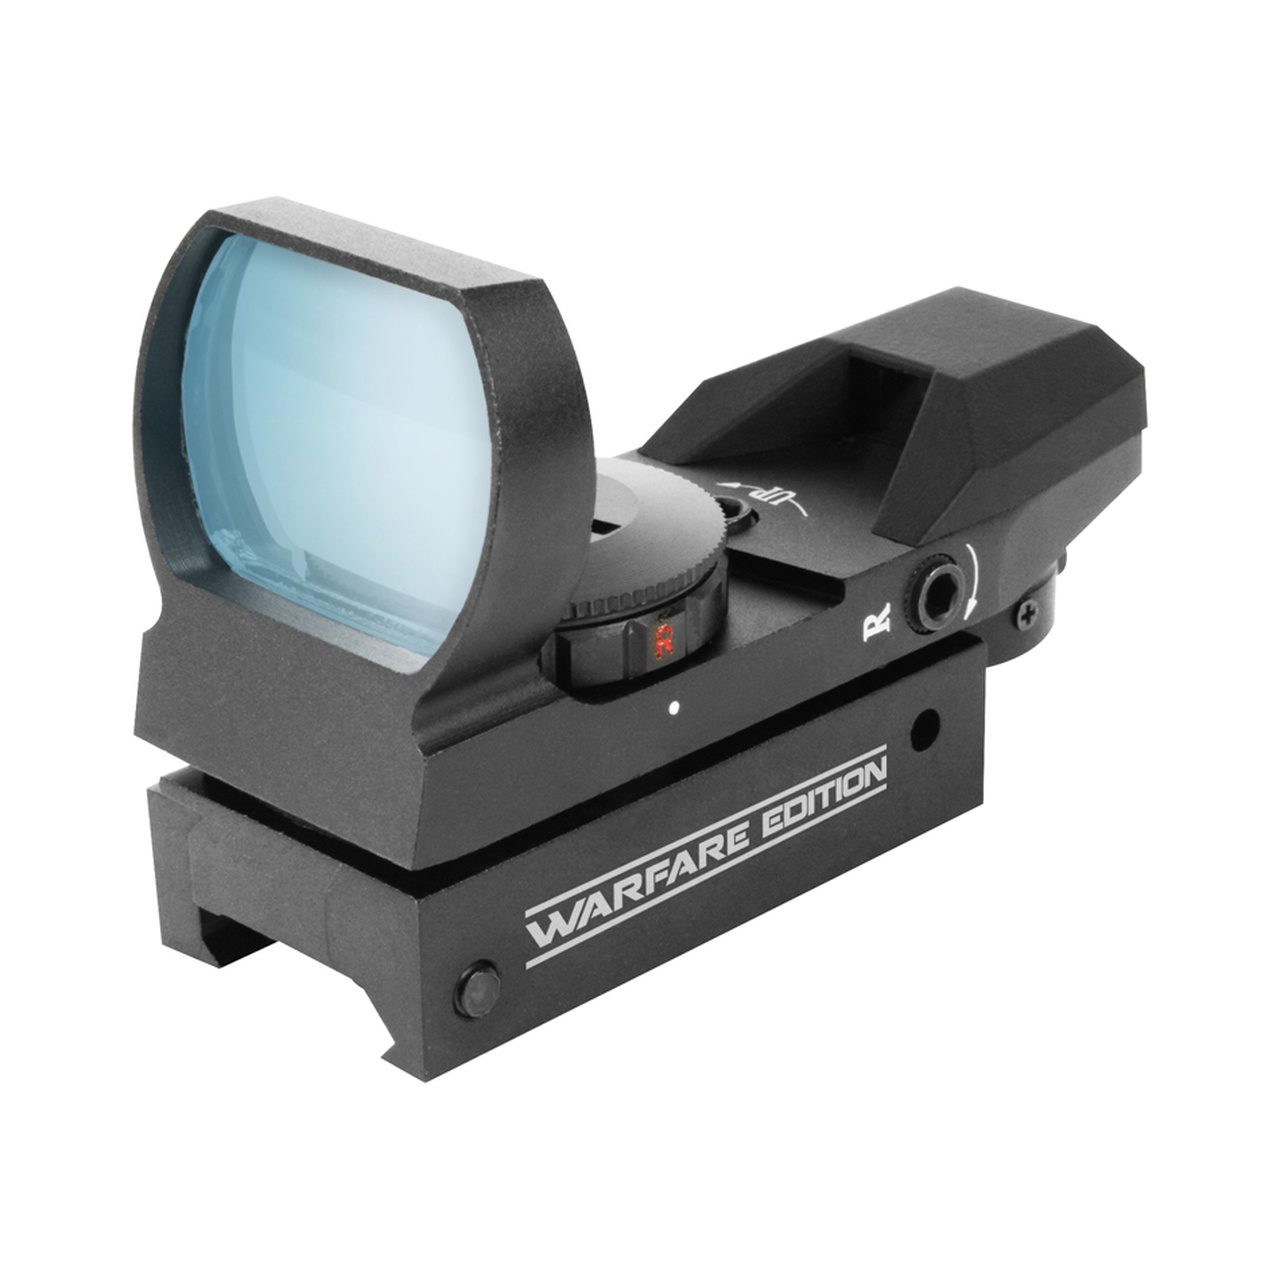 AIM Sports 1x34mm Dual-Illuminated Eye Relief Reticle Sight